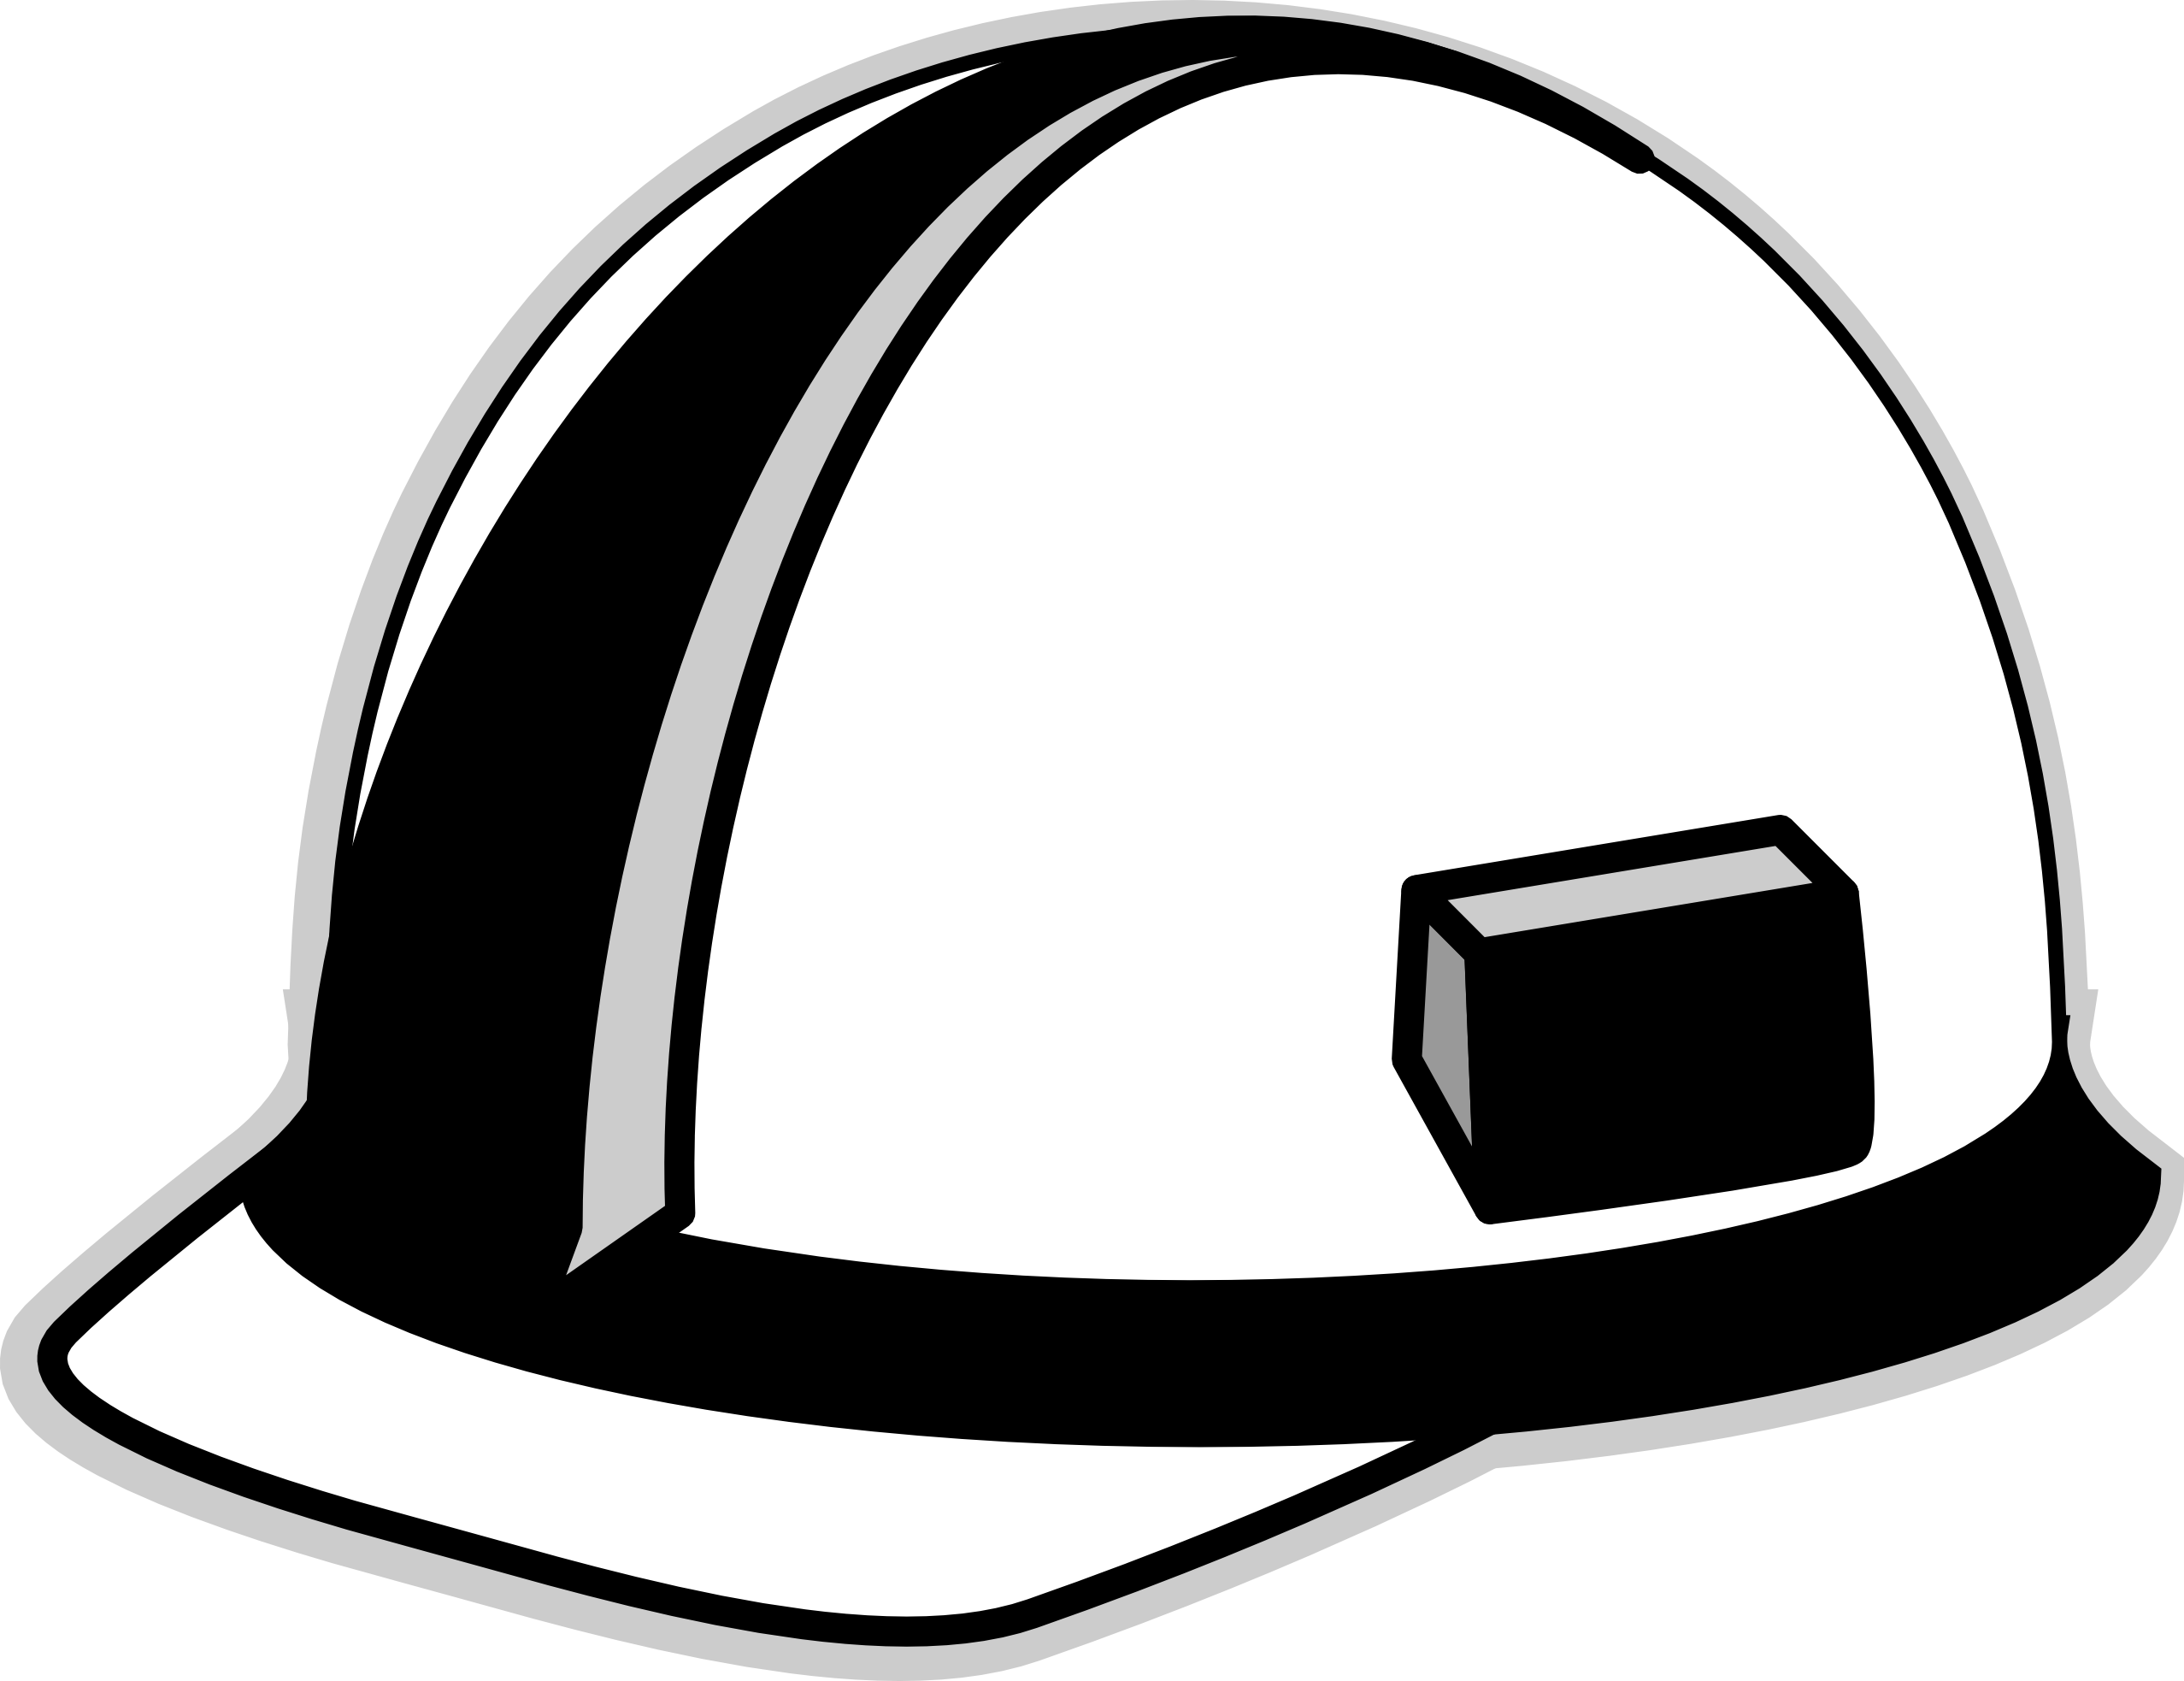 Boots svg spur drawing. Hard hat art image